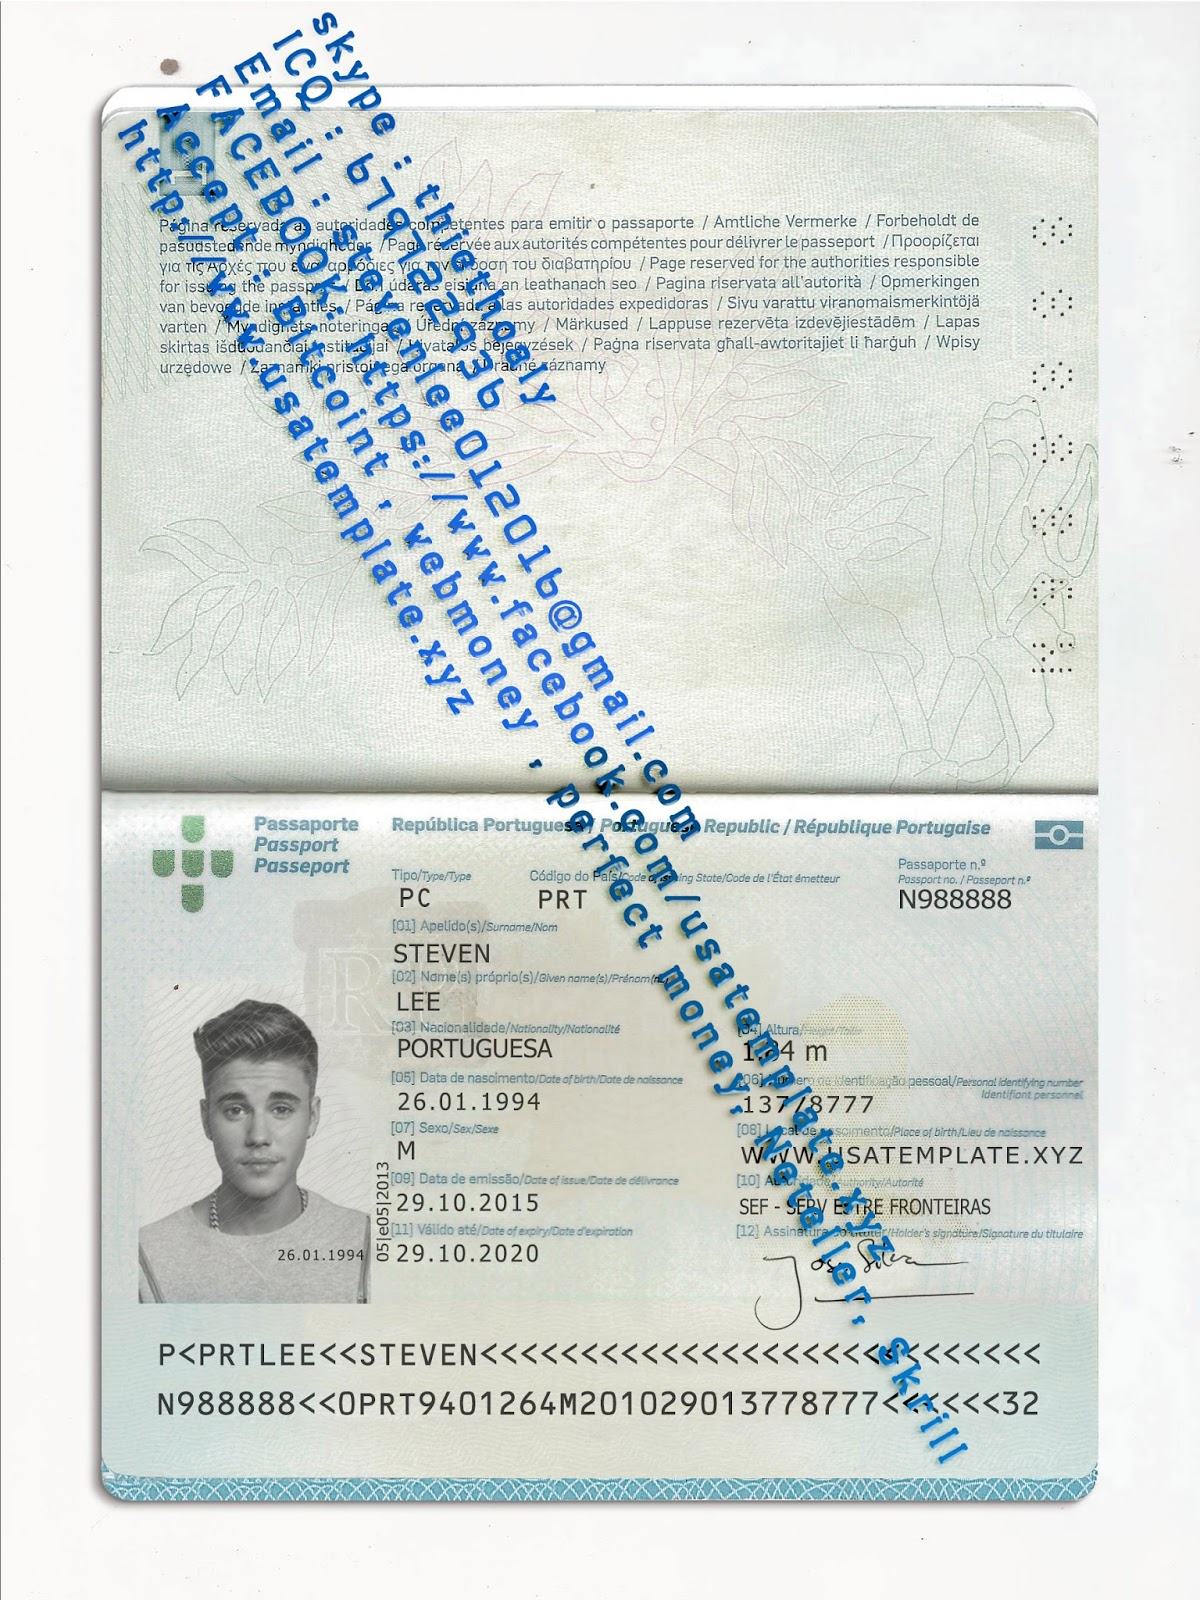 photoshop passport photo template v1 - Garry.biosalud.co